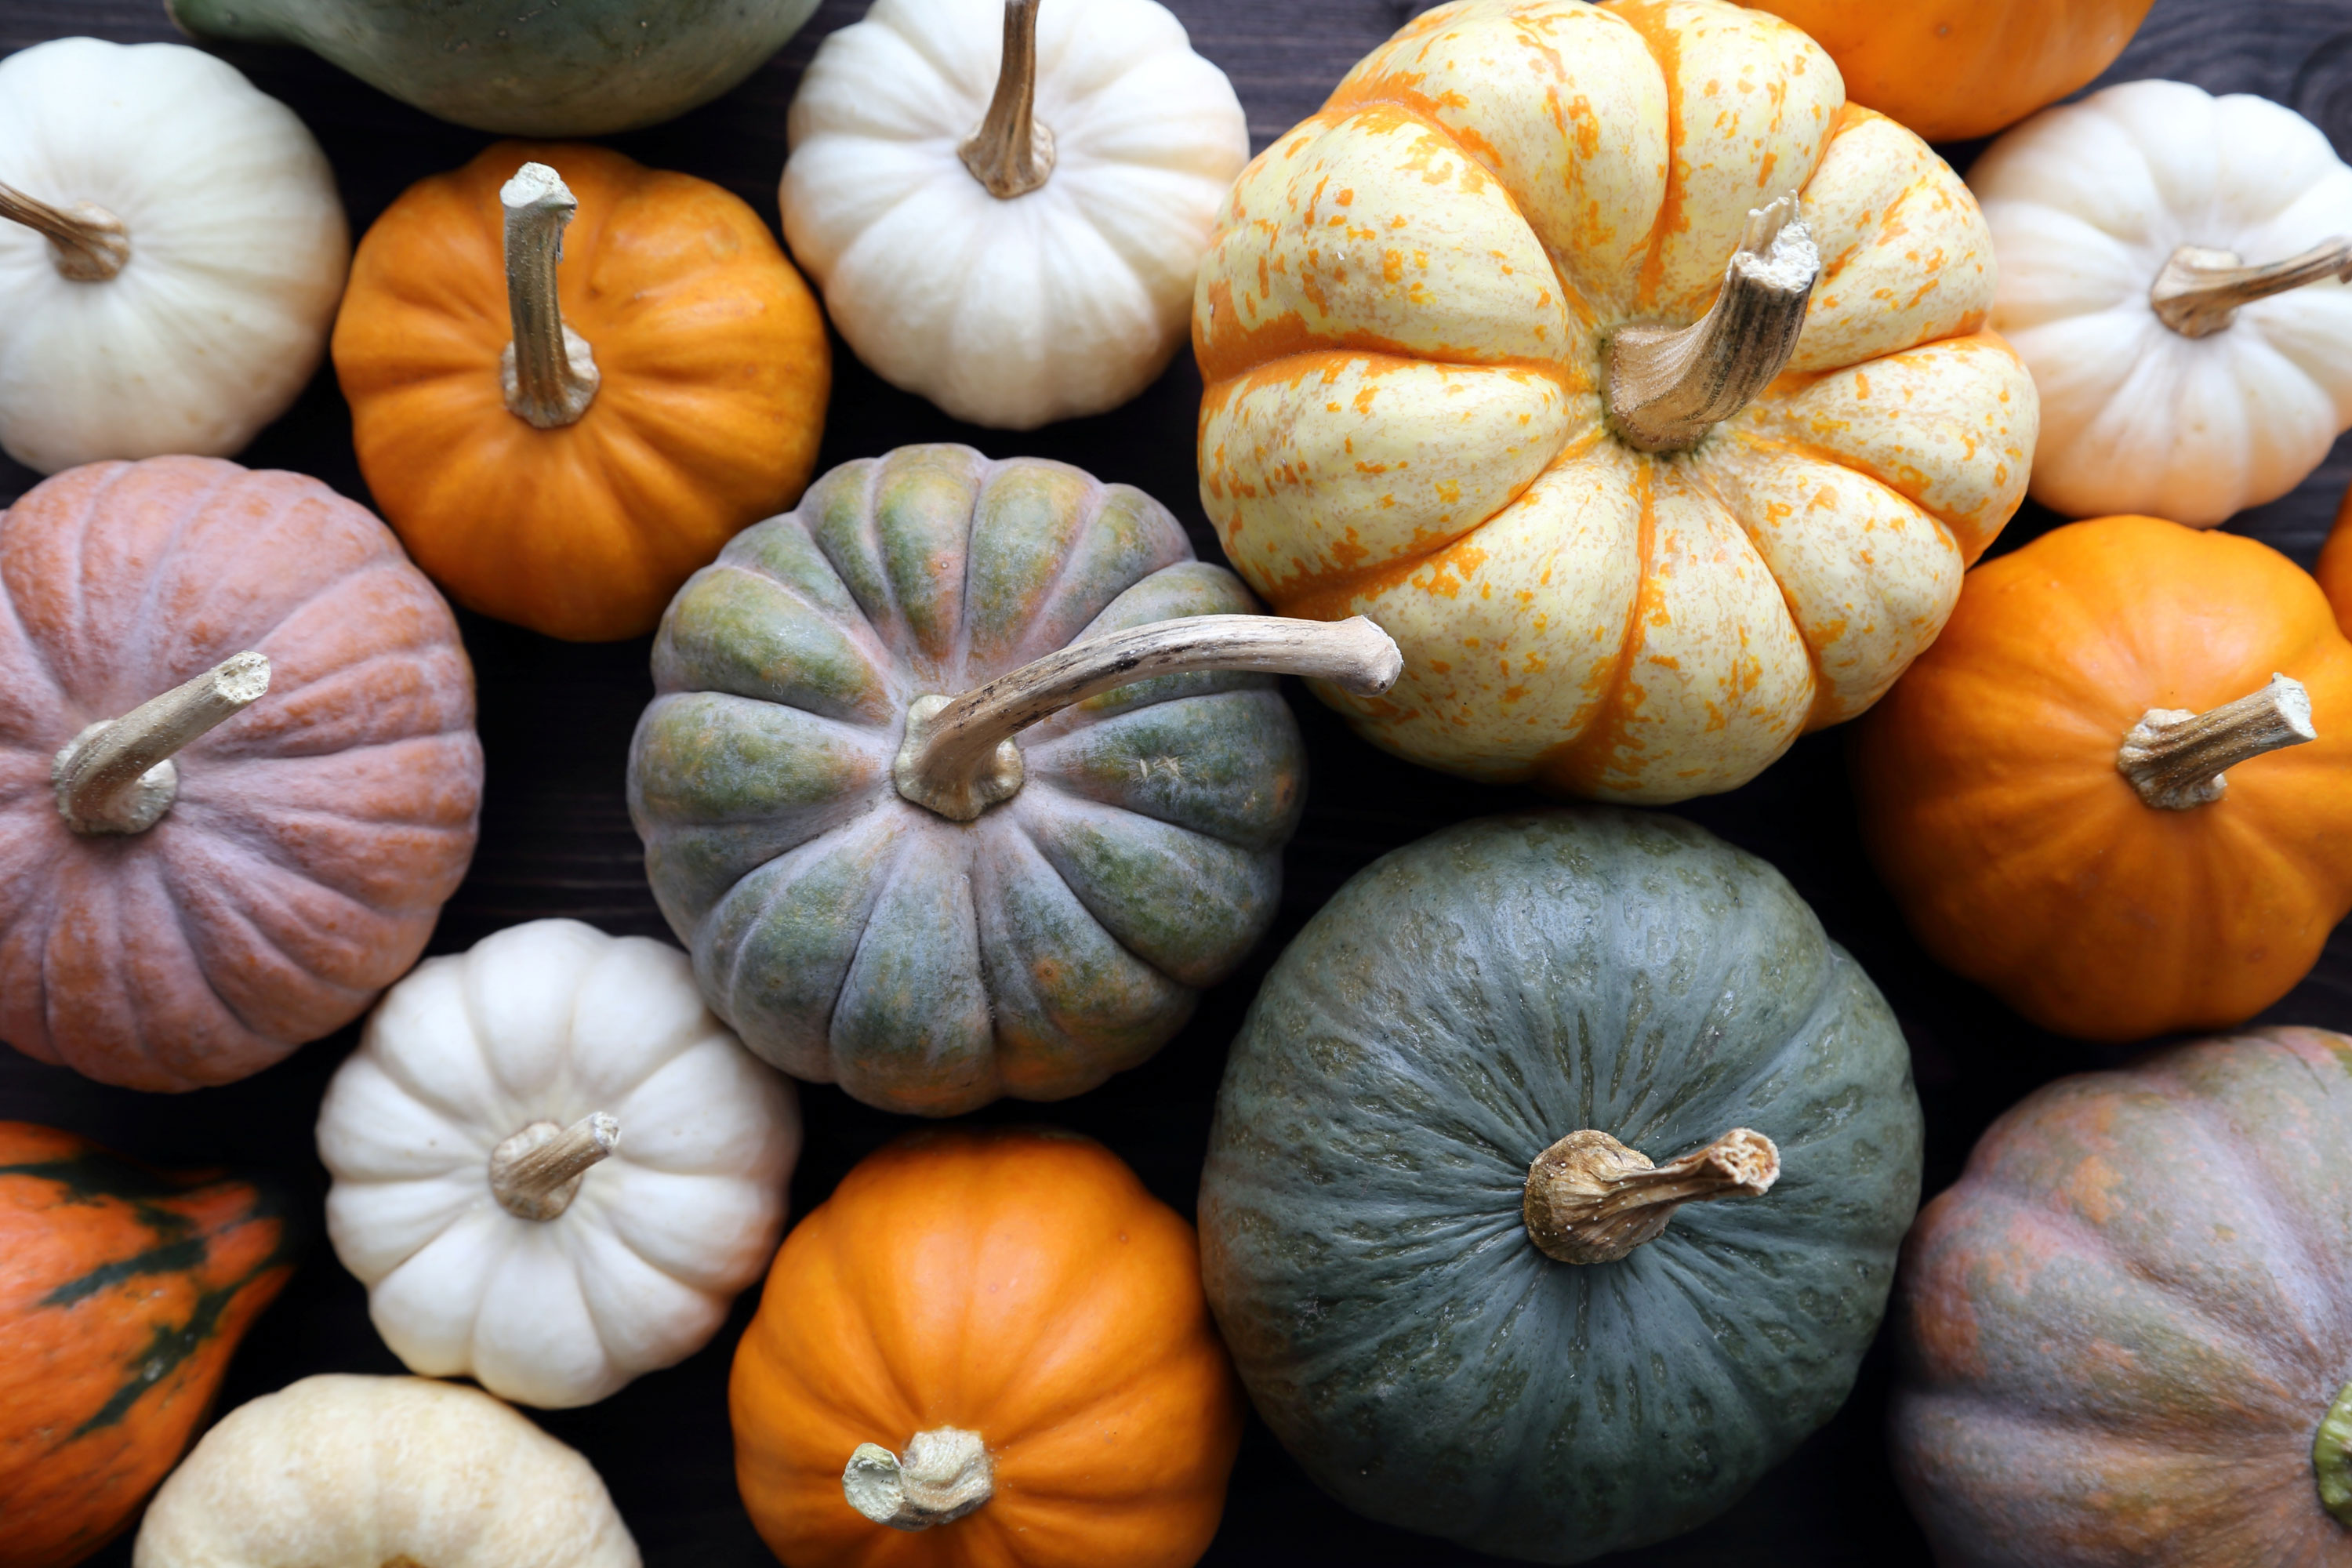 Forget that pumpkin spice flavored latte. That is not pumpkin. These foods are